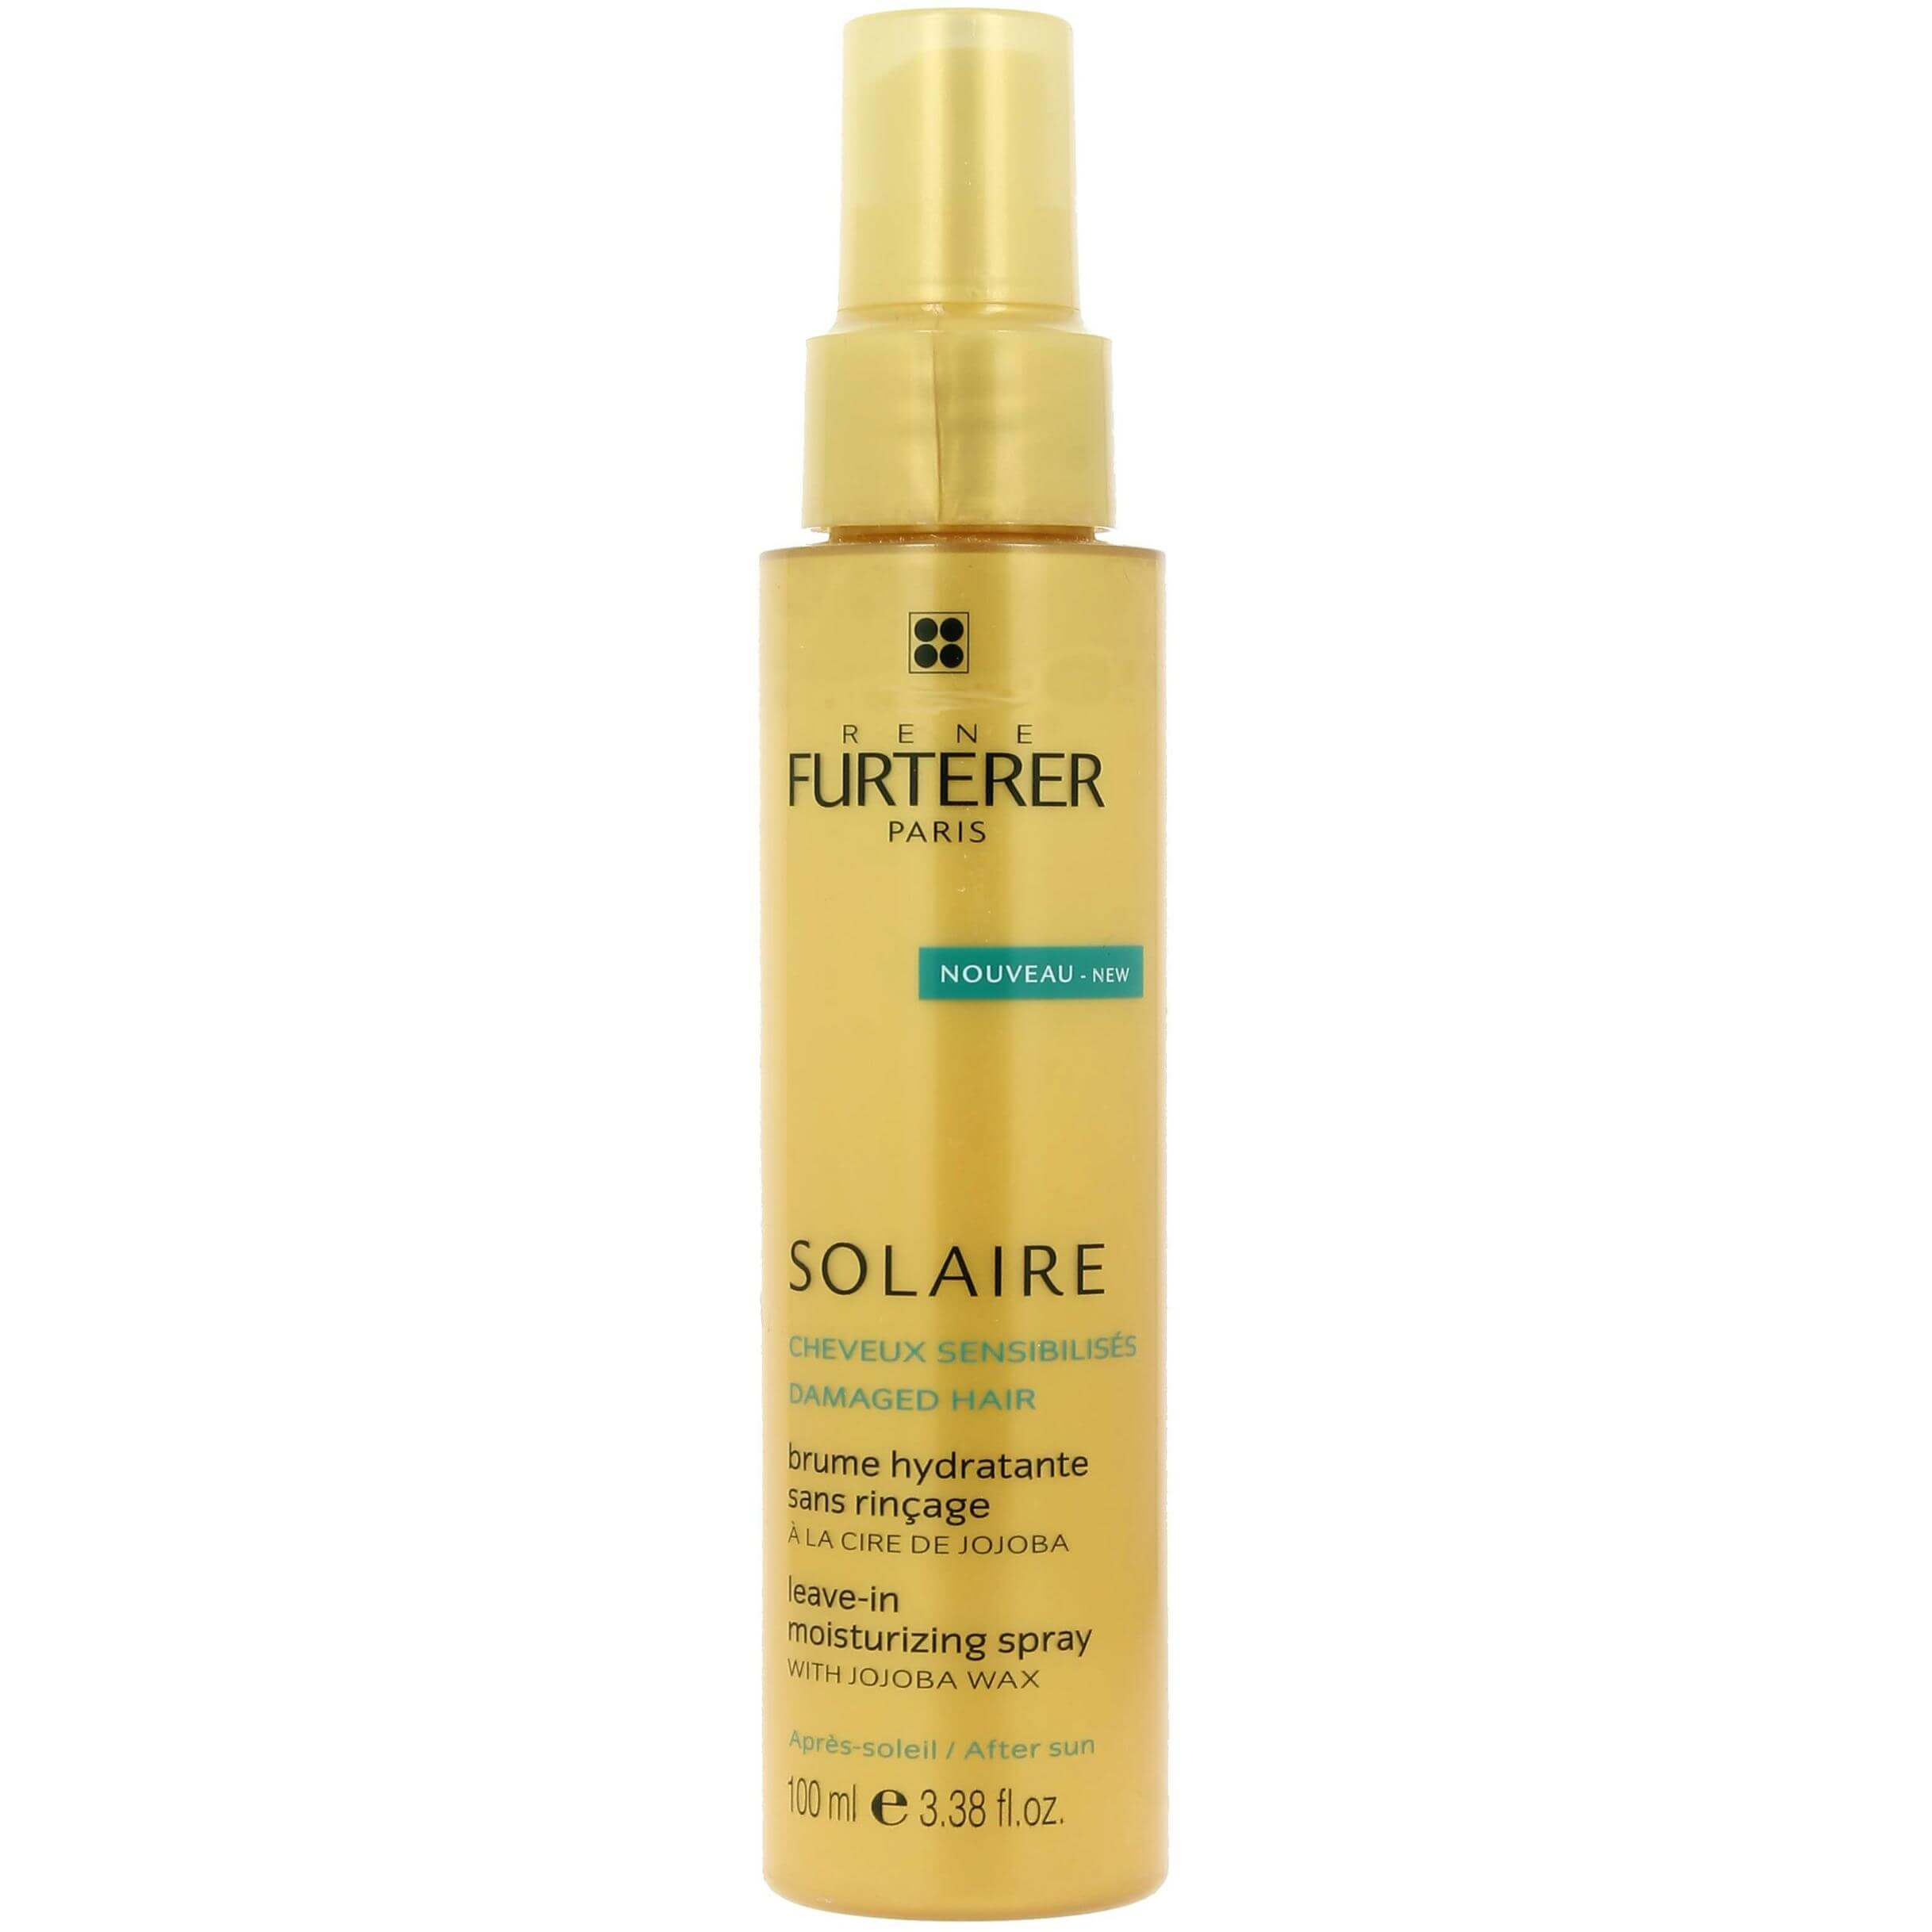 Rene Furterer Solaire After Sun Leave-In Moisturizing Spray with Jojoba 100ml